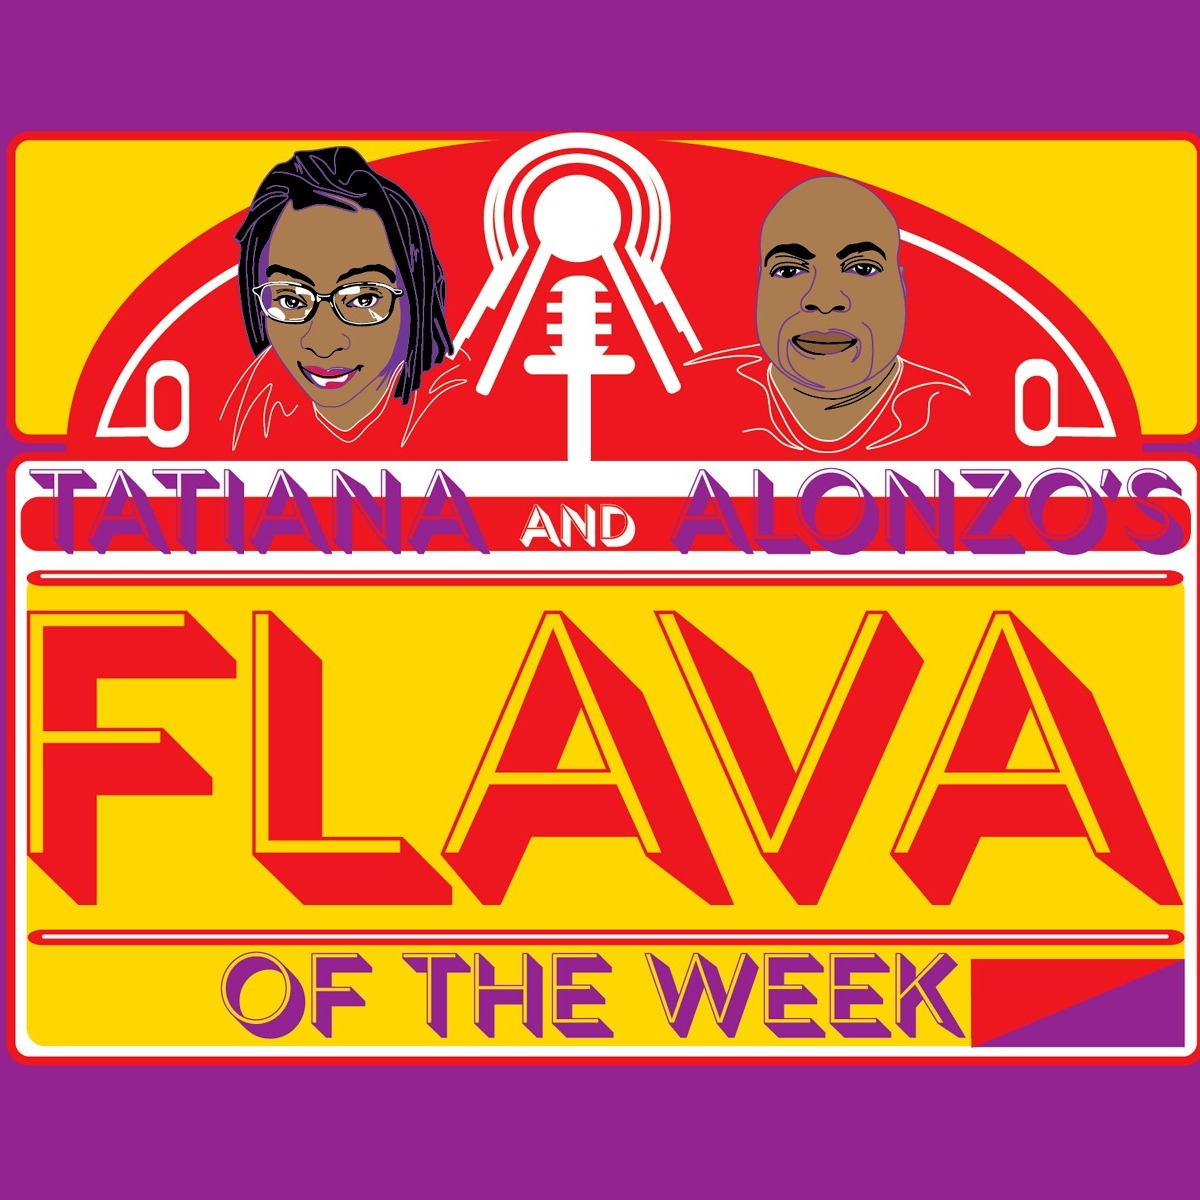 Tatiana and Alonzo's Flava of the Week | Listen Free on Castbox